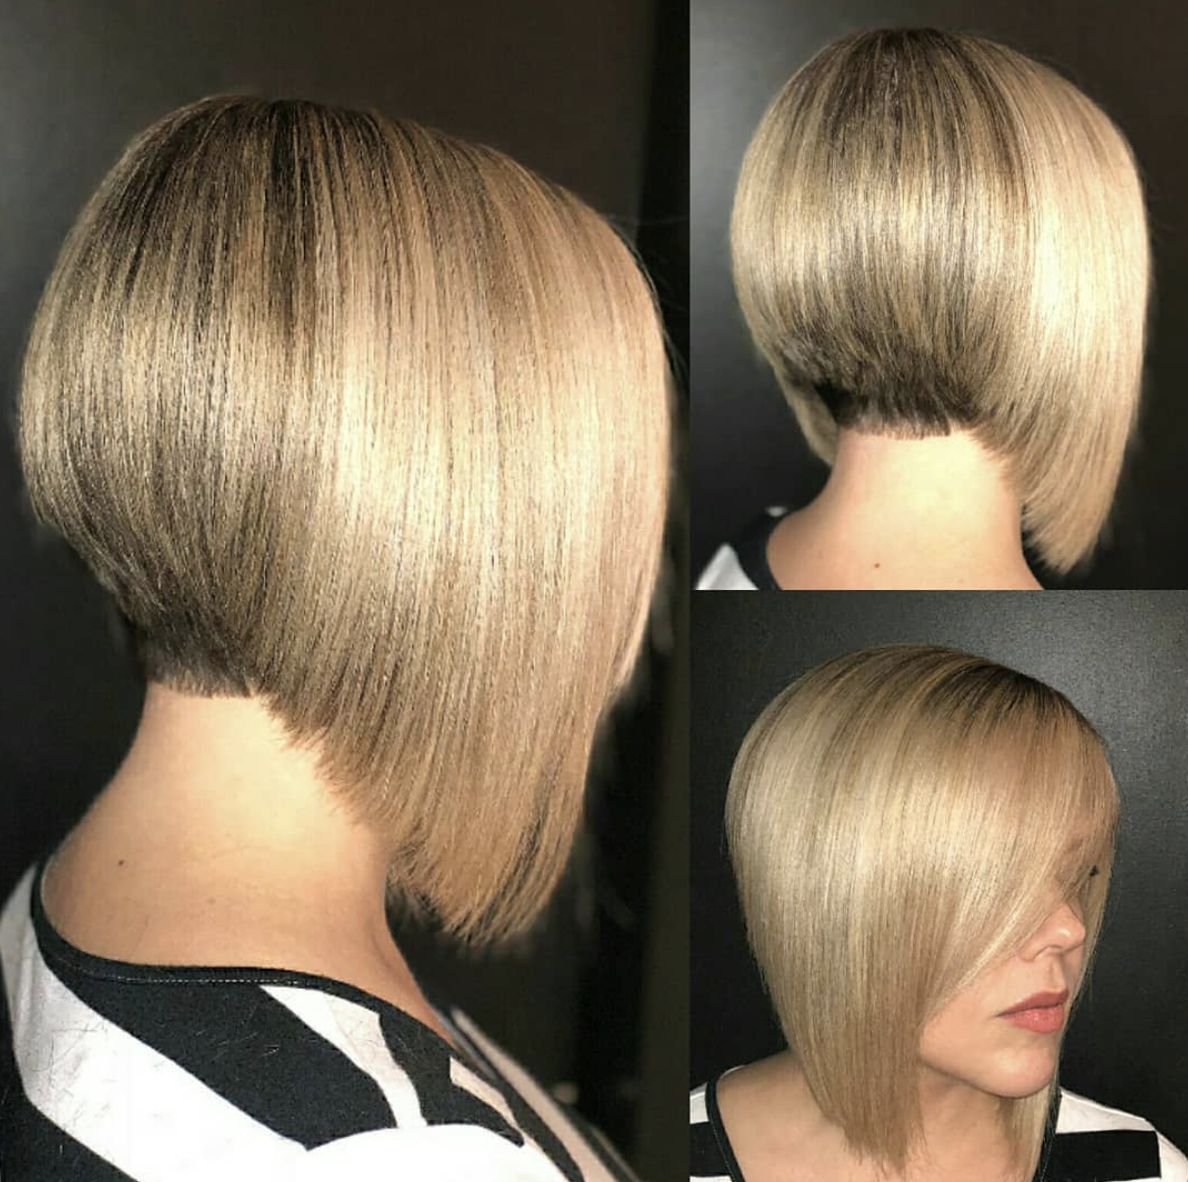 Pin By Virginia Phelps On Hair Styles Concave Bob Concave Bob Hairstyles Bob Hairstyles